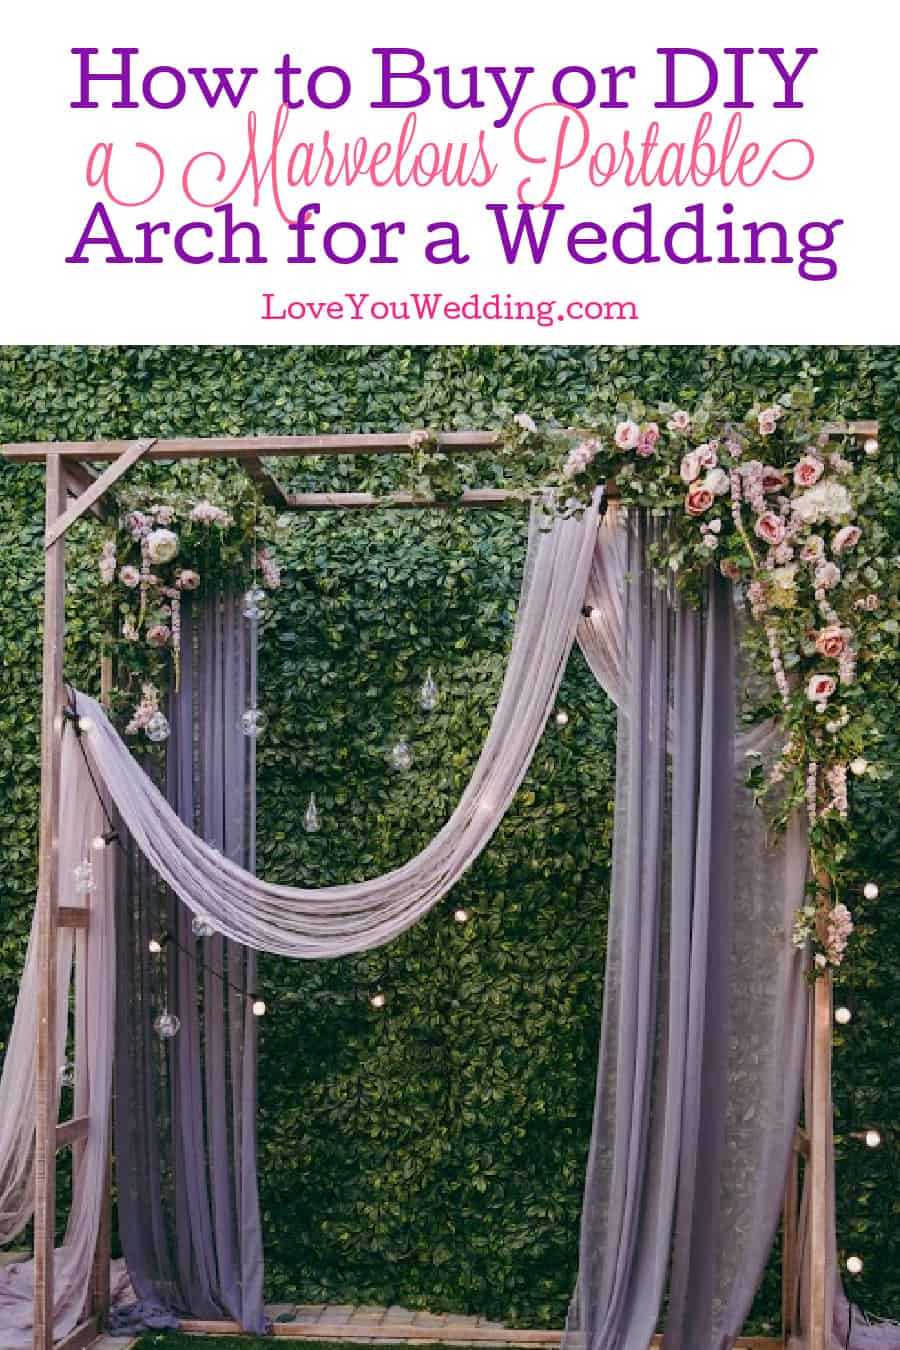 Portable arches are a popular choice for weddings because they're convenient and affordable. Check out our favorite ideas to buy or DIY one!